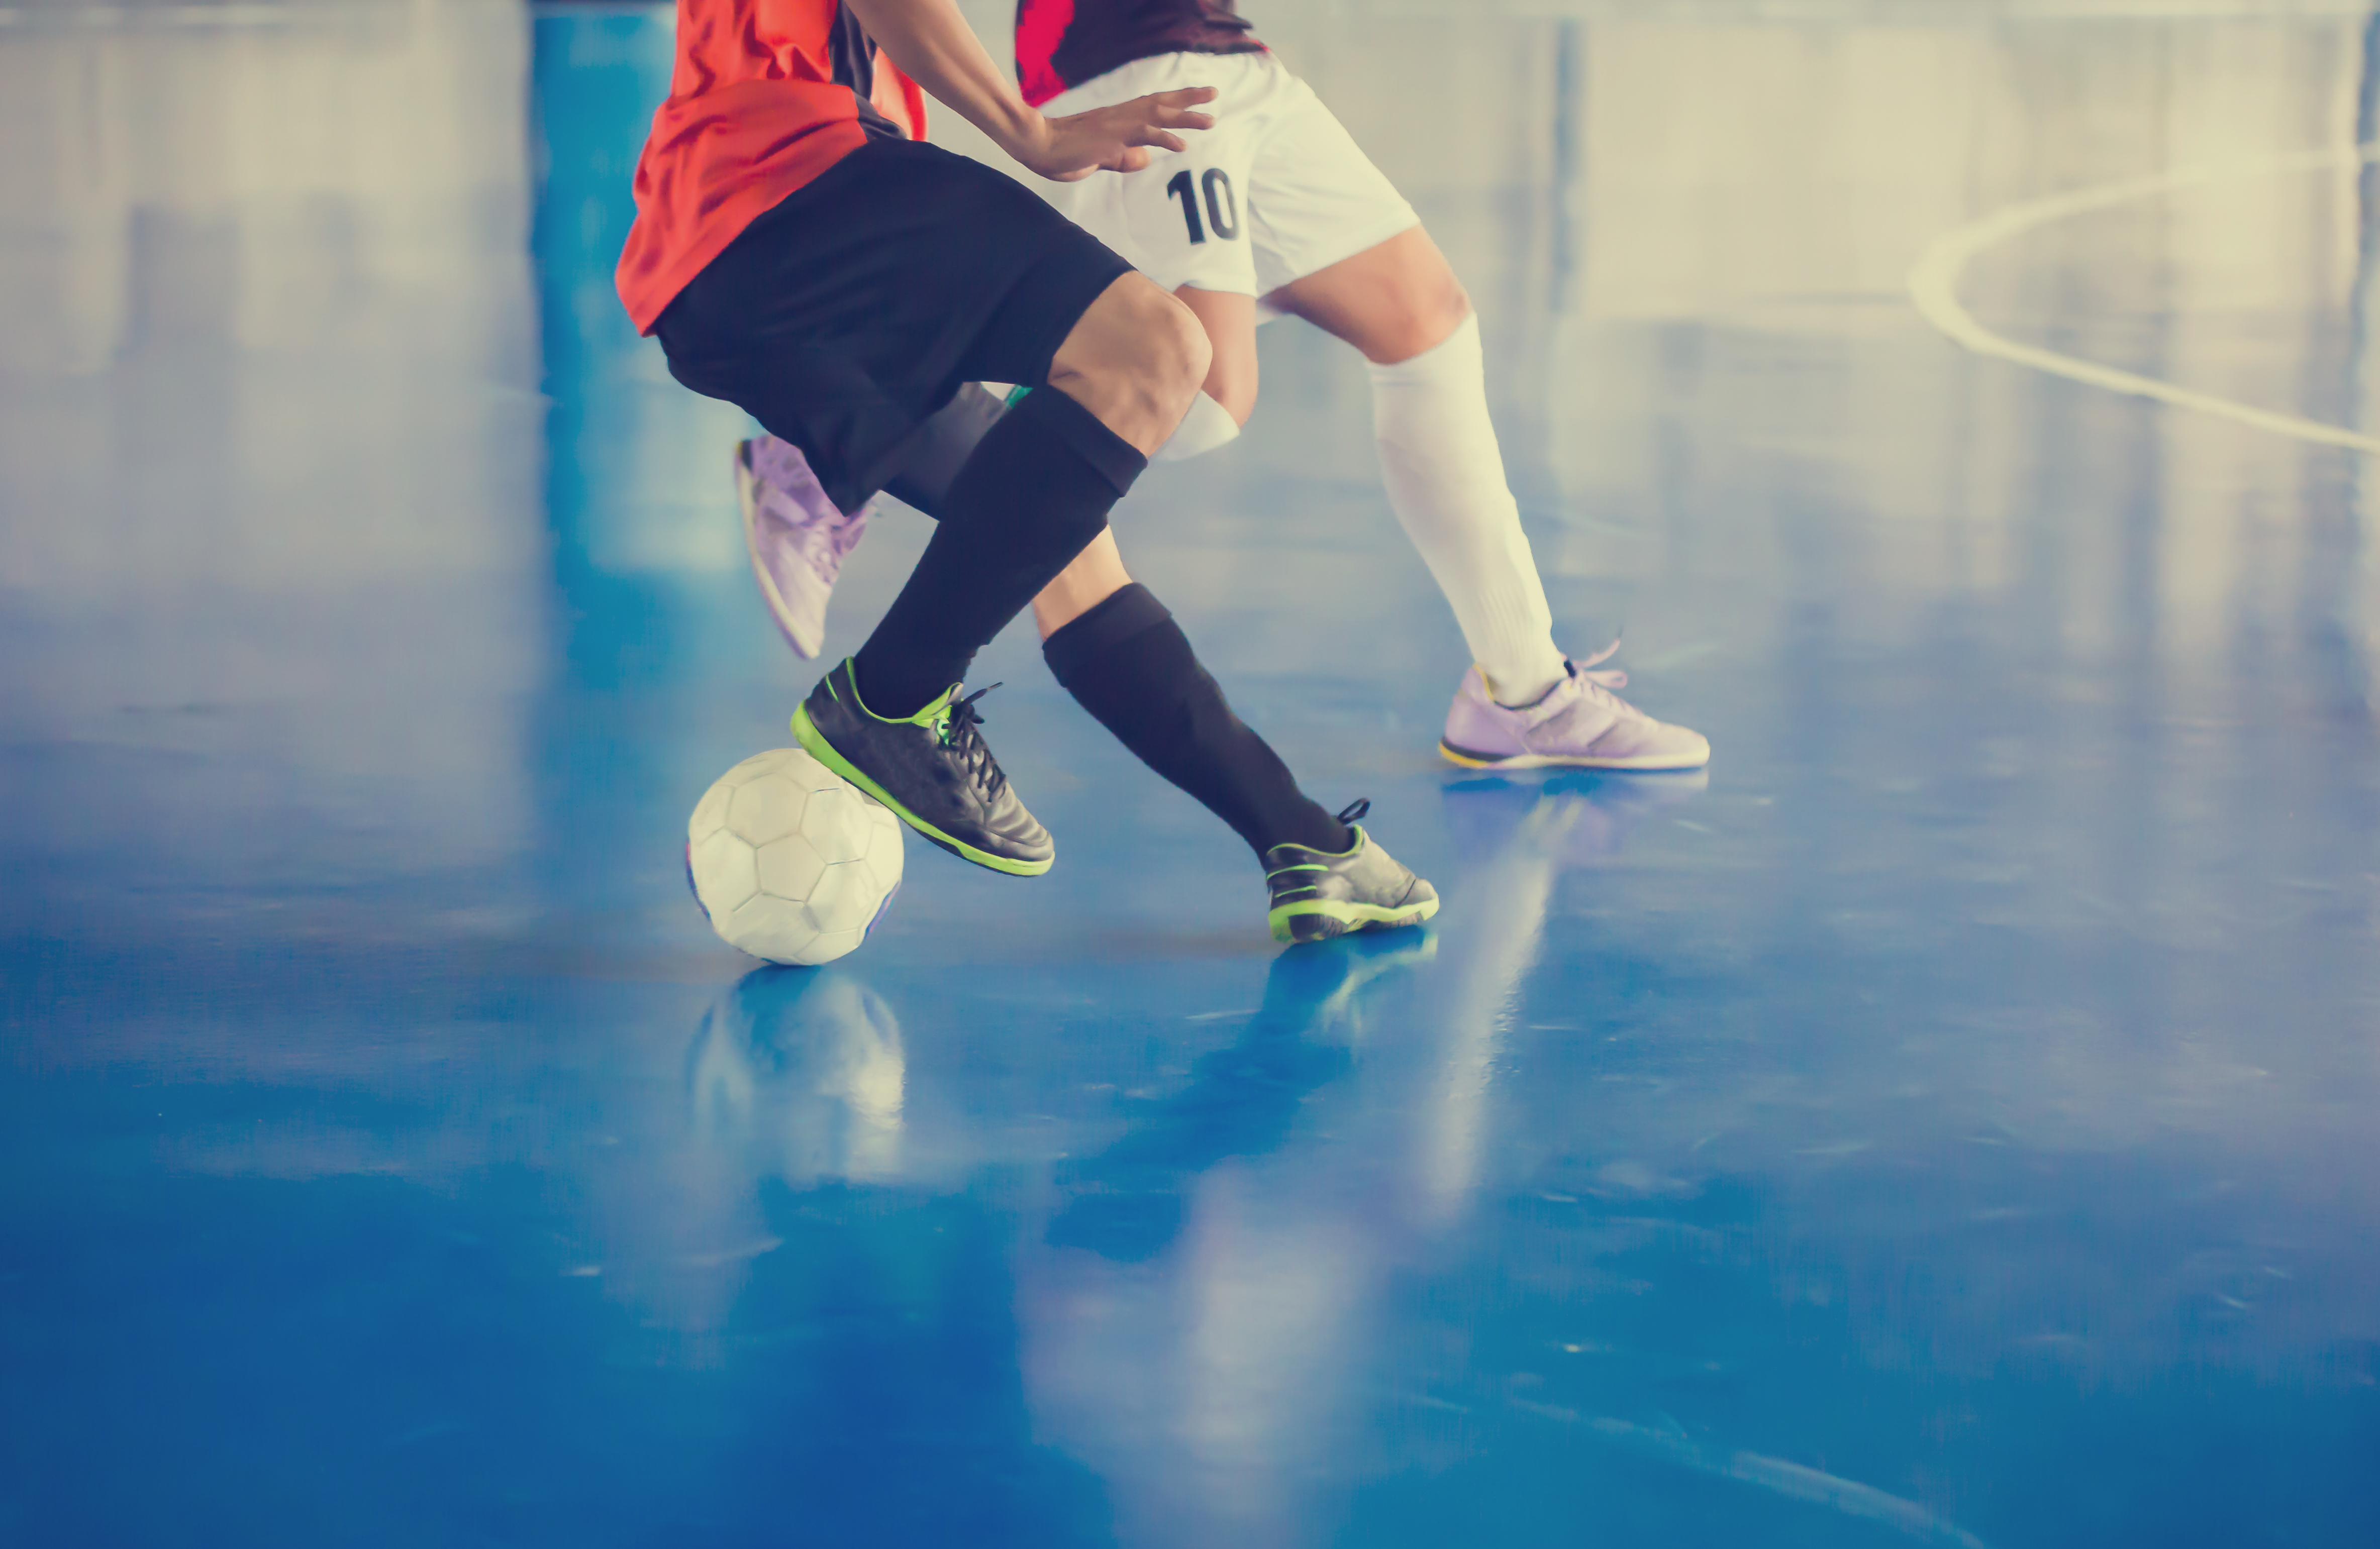 Futsal expands its arena with solutions from Norkring